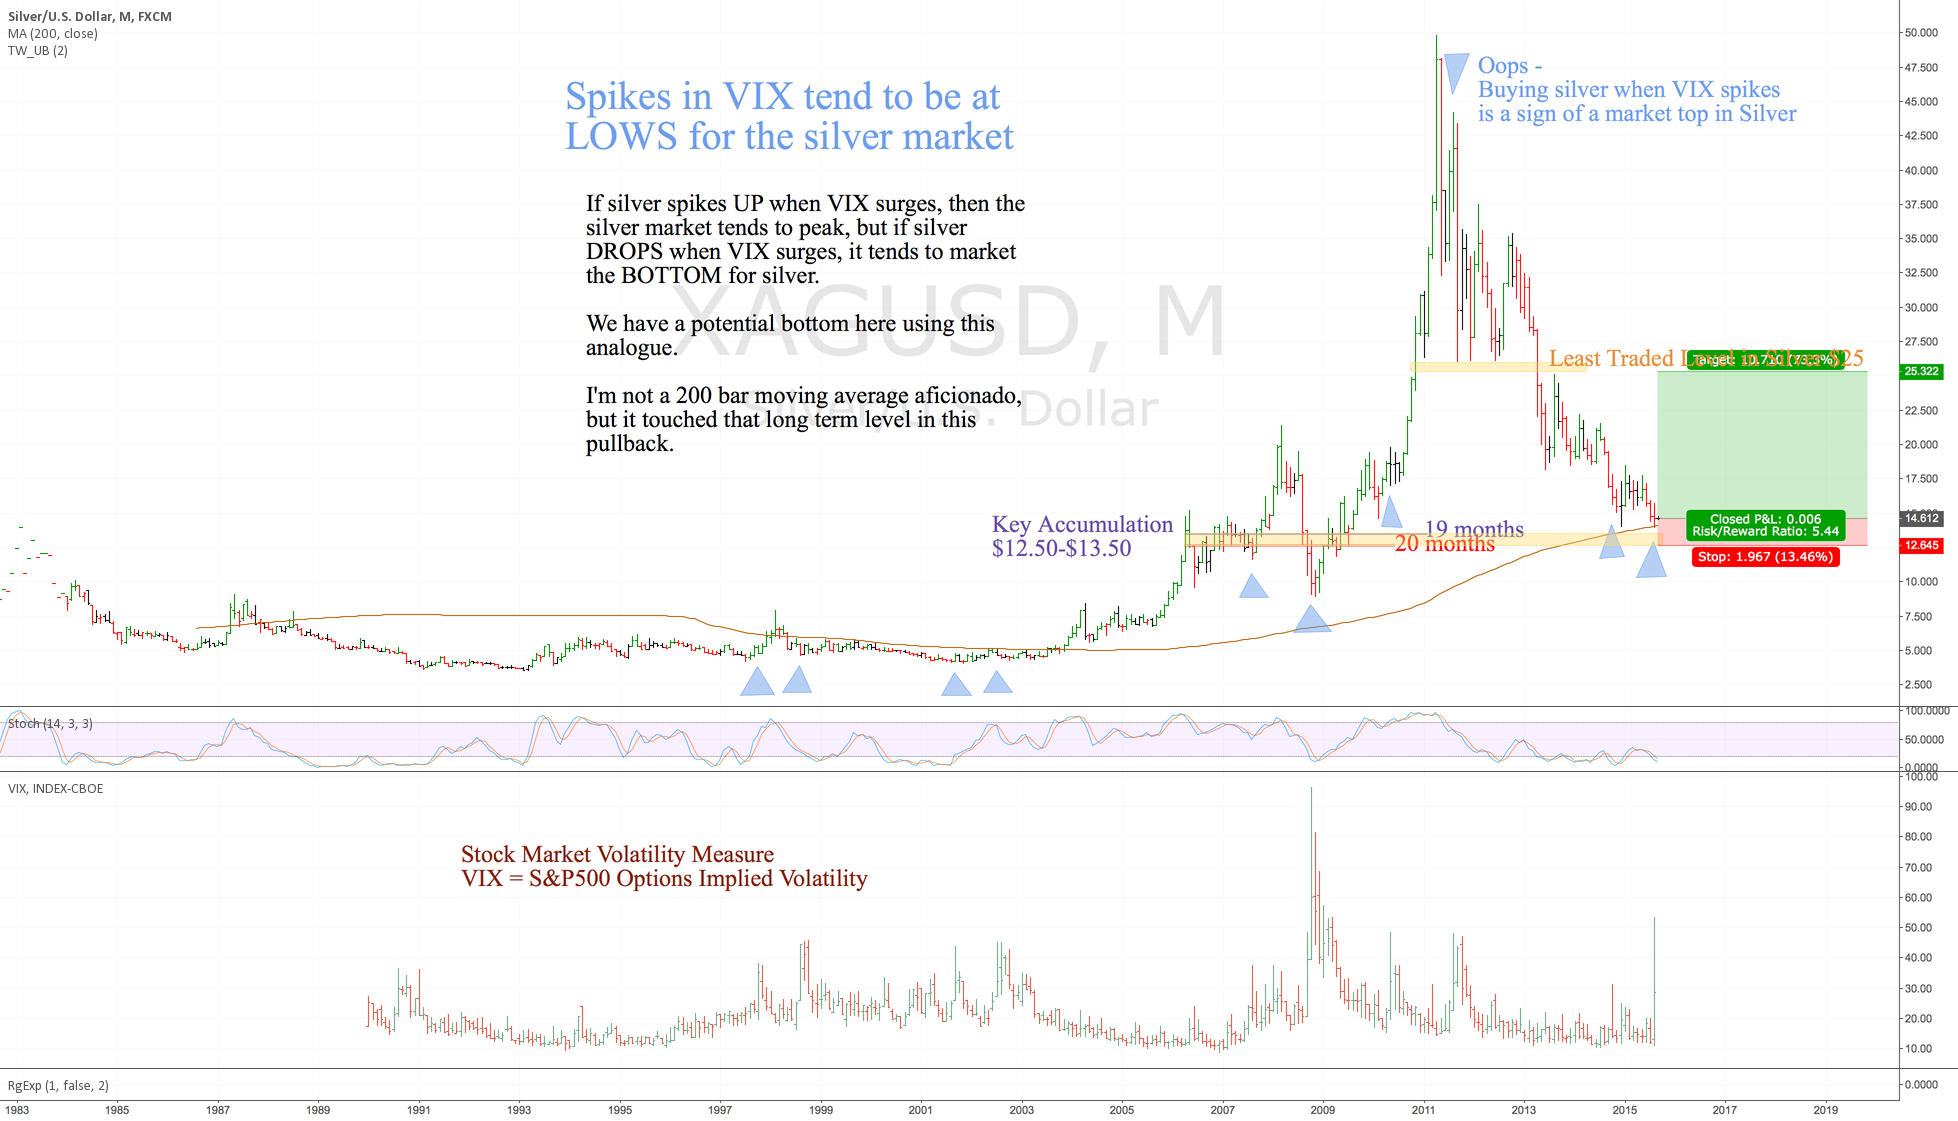 Silver during spikes in VIX - buy signal setup now